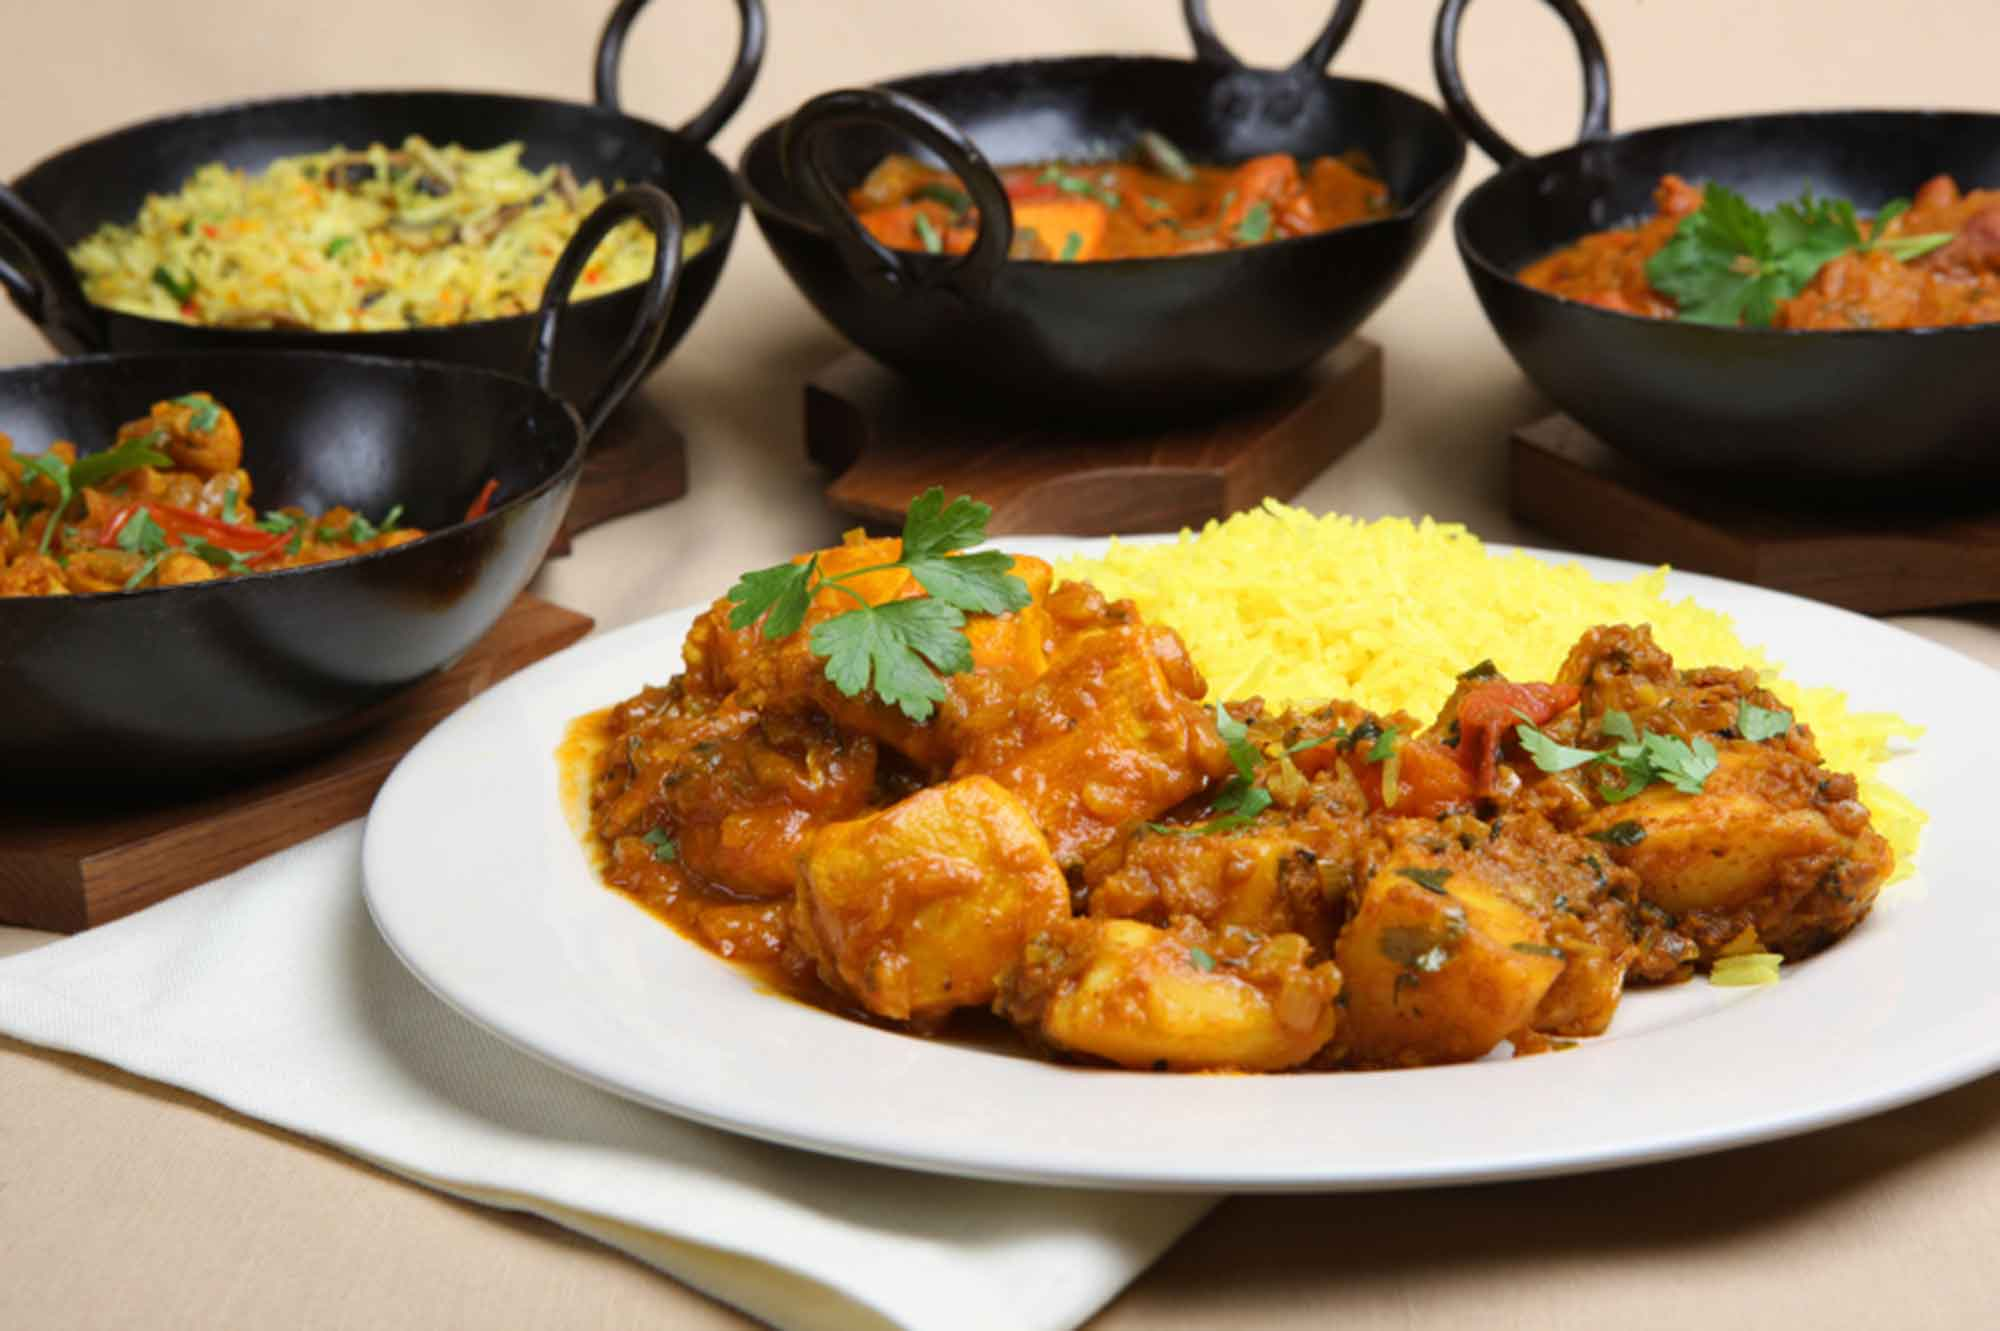 Search for Indian Take aways in and around Tonbridge